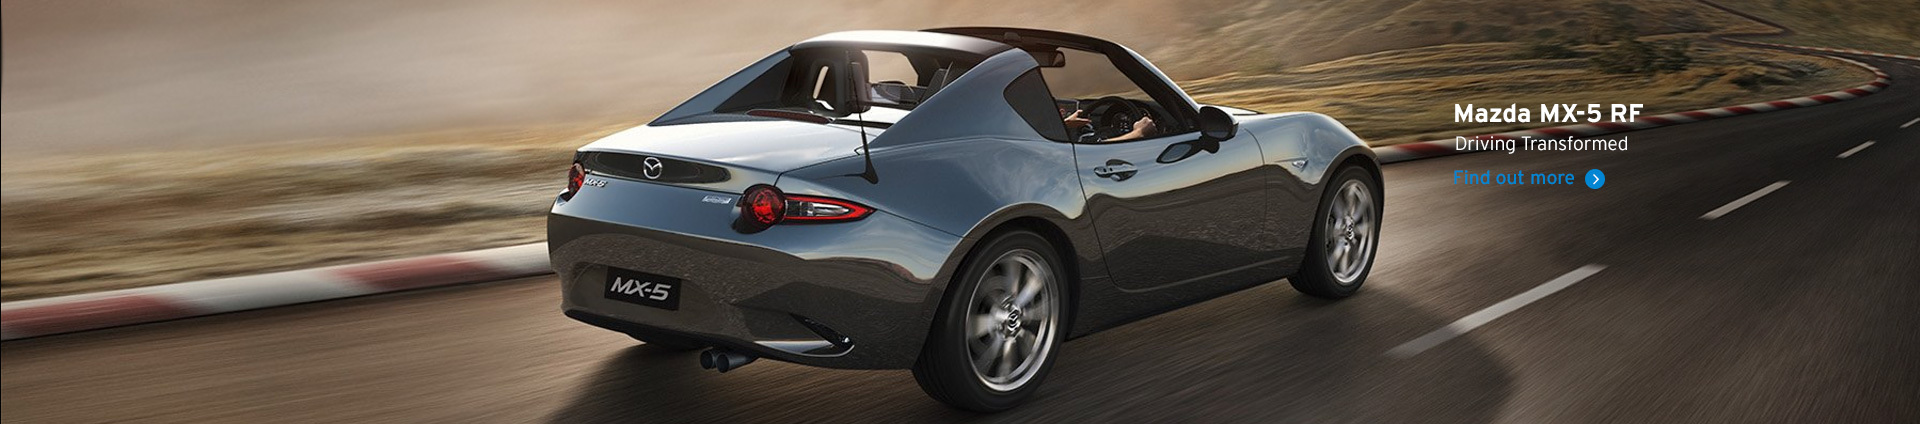 Mazda MX-5 RF - Driving Transformed